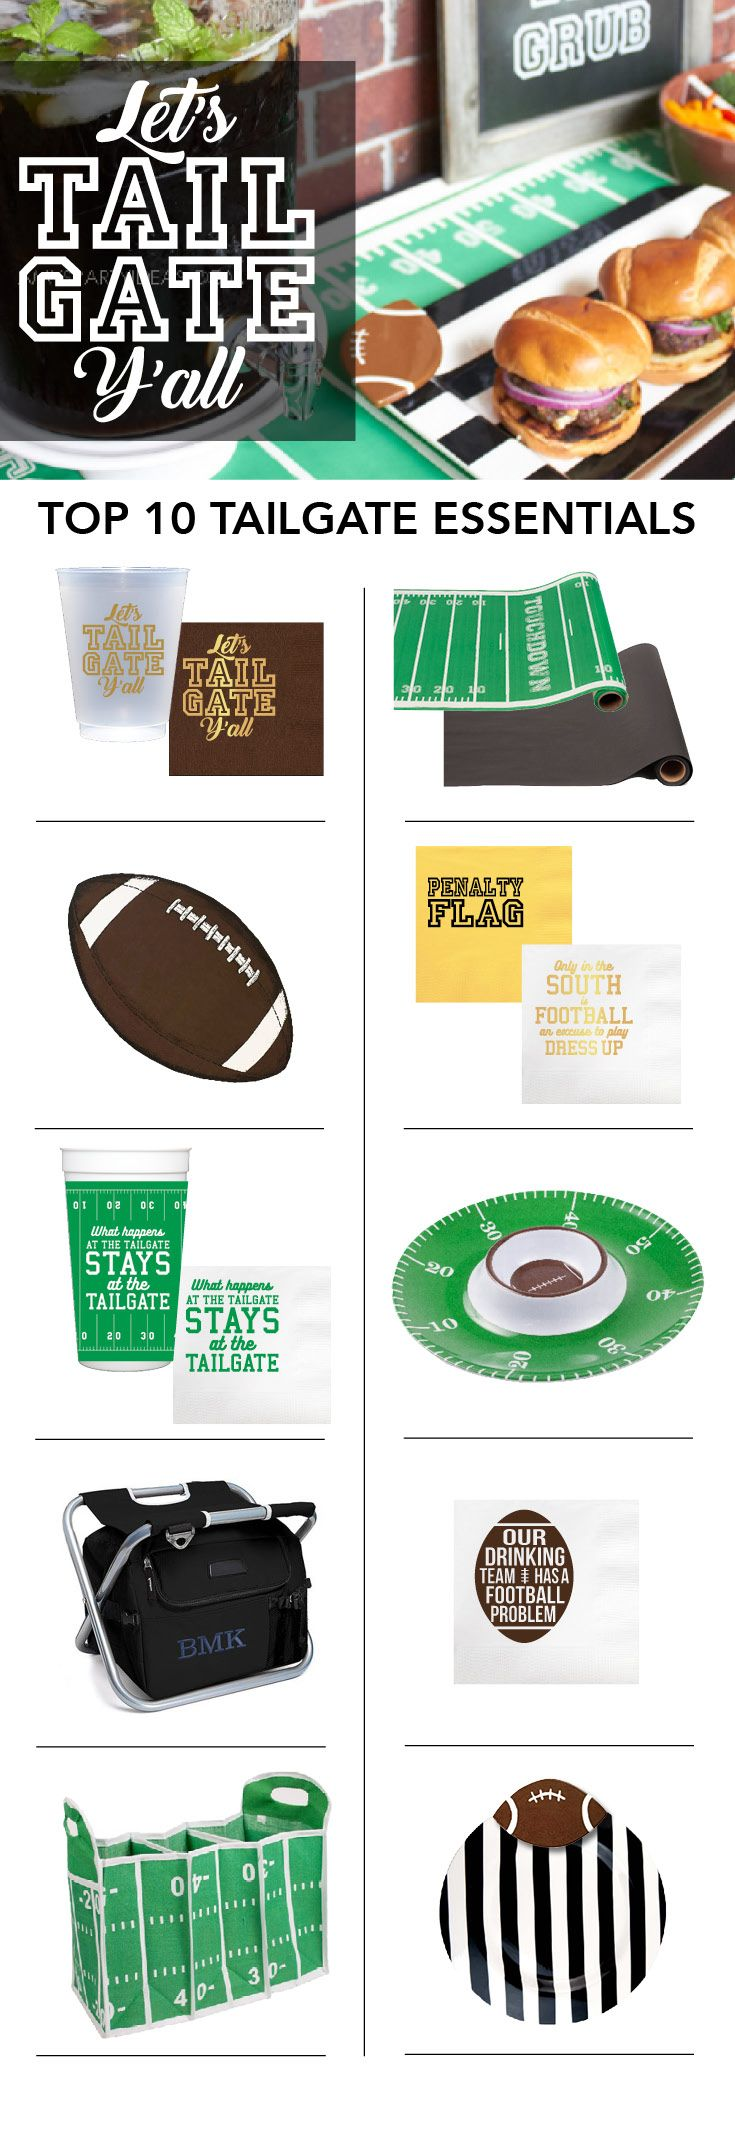 Shop our top tailgate party essentials online now!